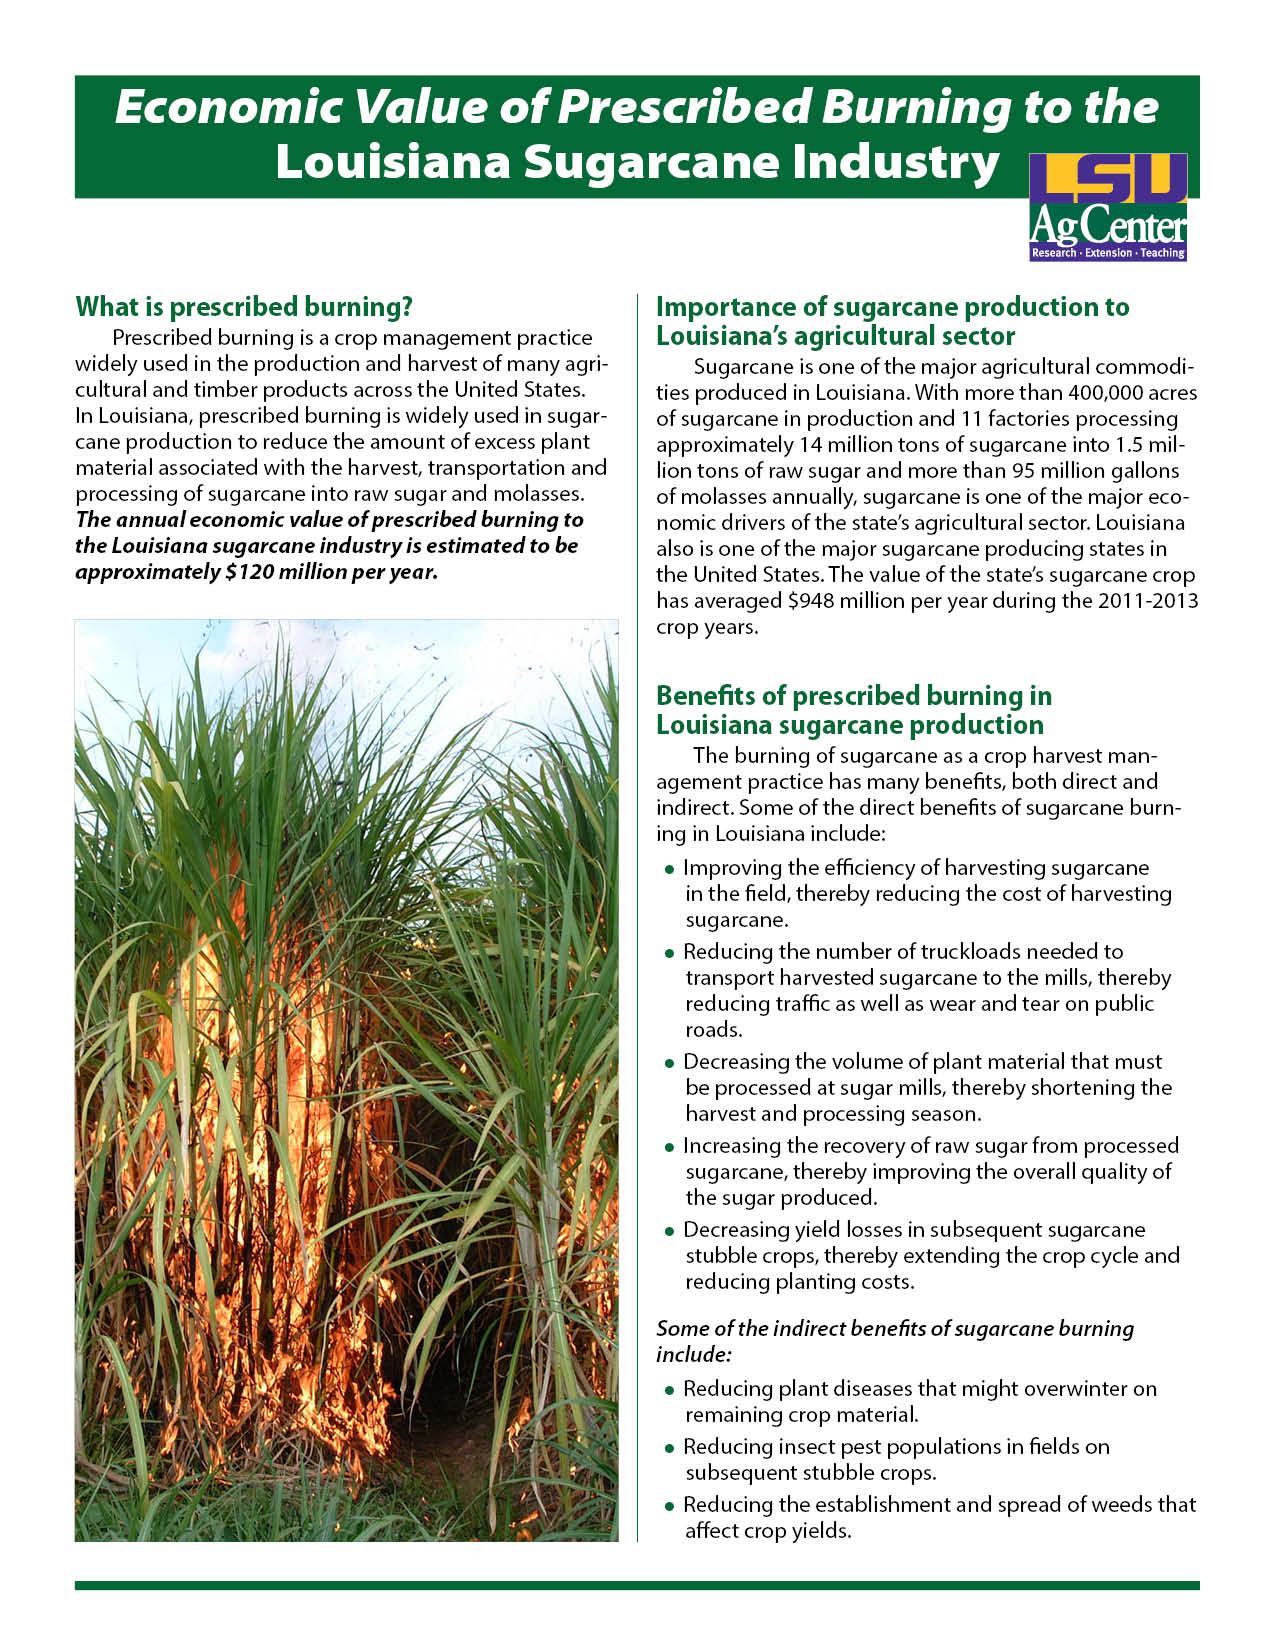 Economic Value of Prescribed Burning to the Louisiana Sugarcane Industry